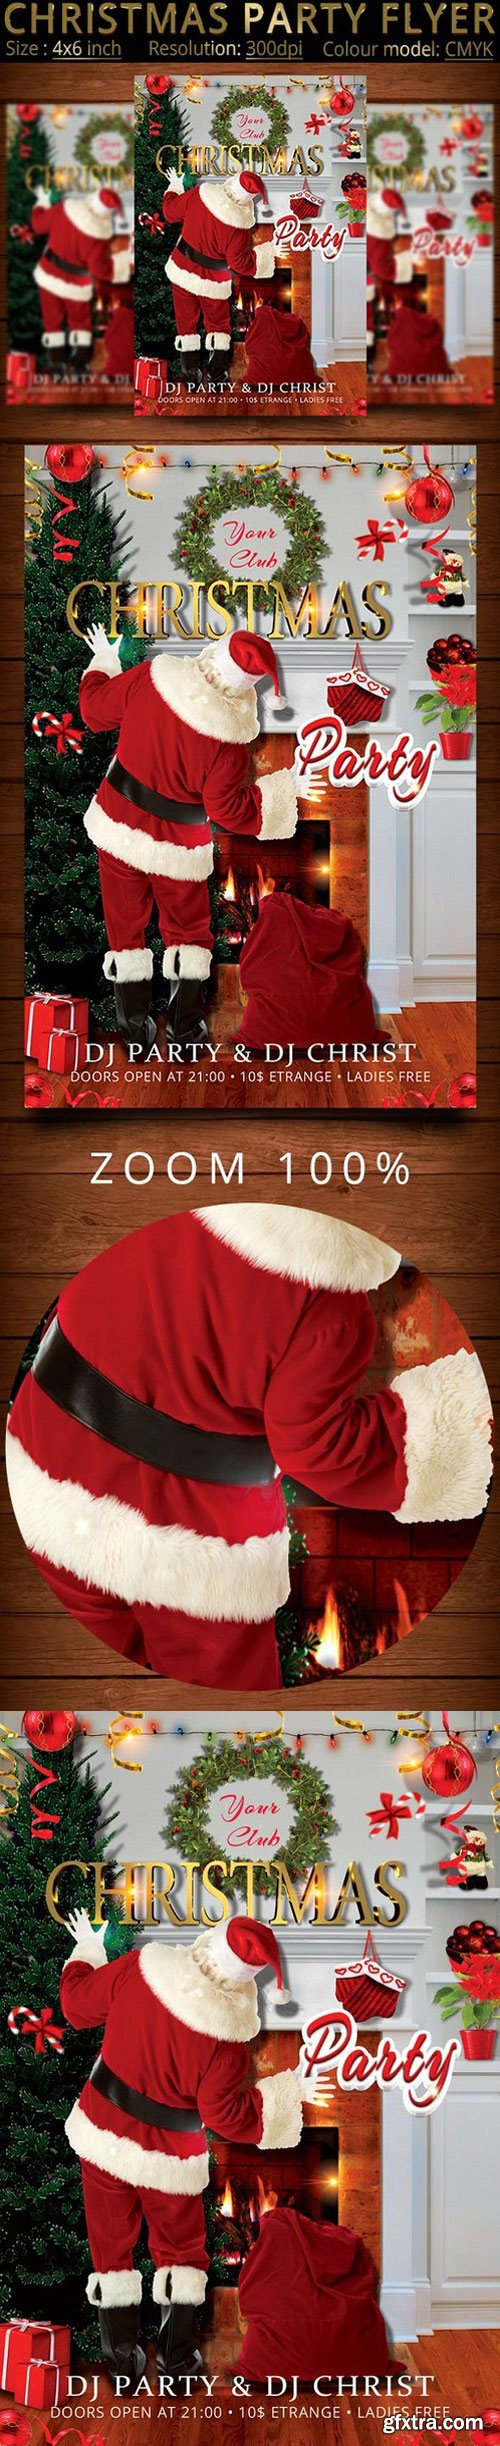 CM - Christmas New Year Party Flyer 1070735